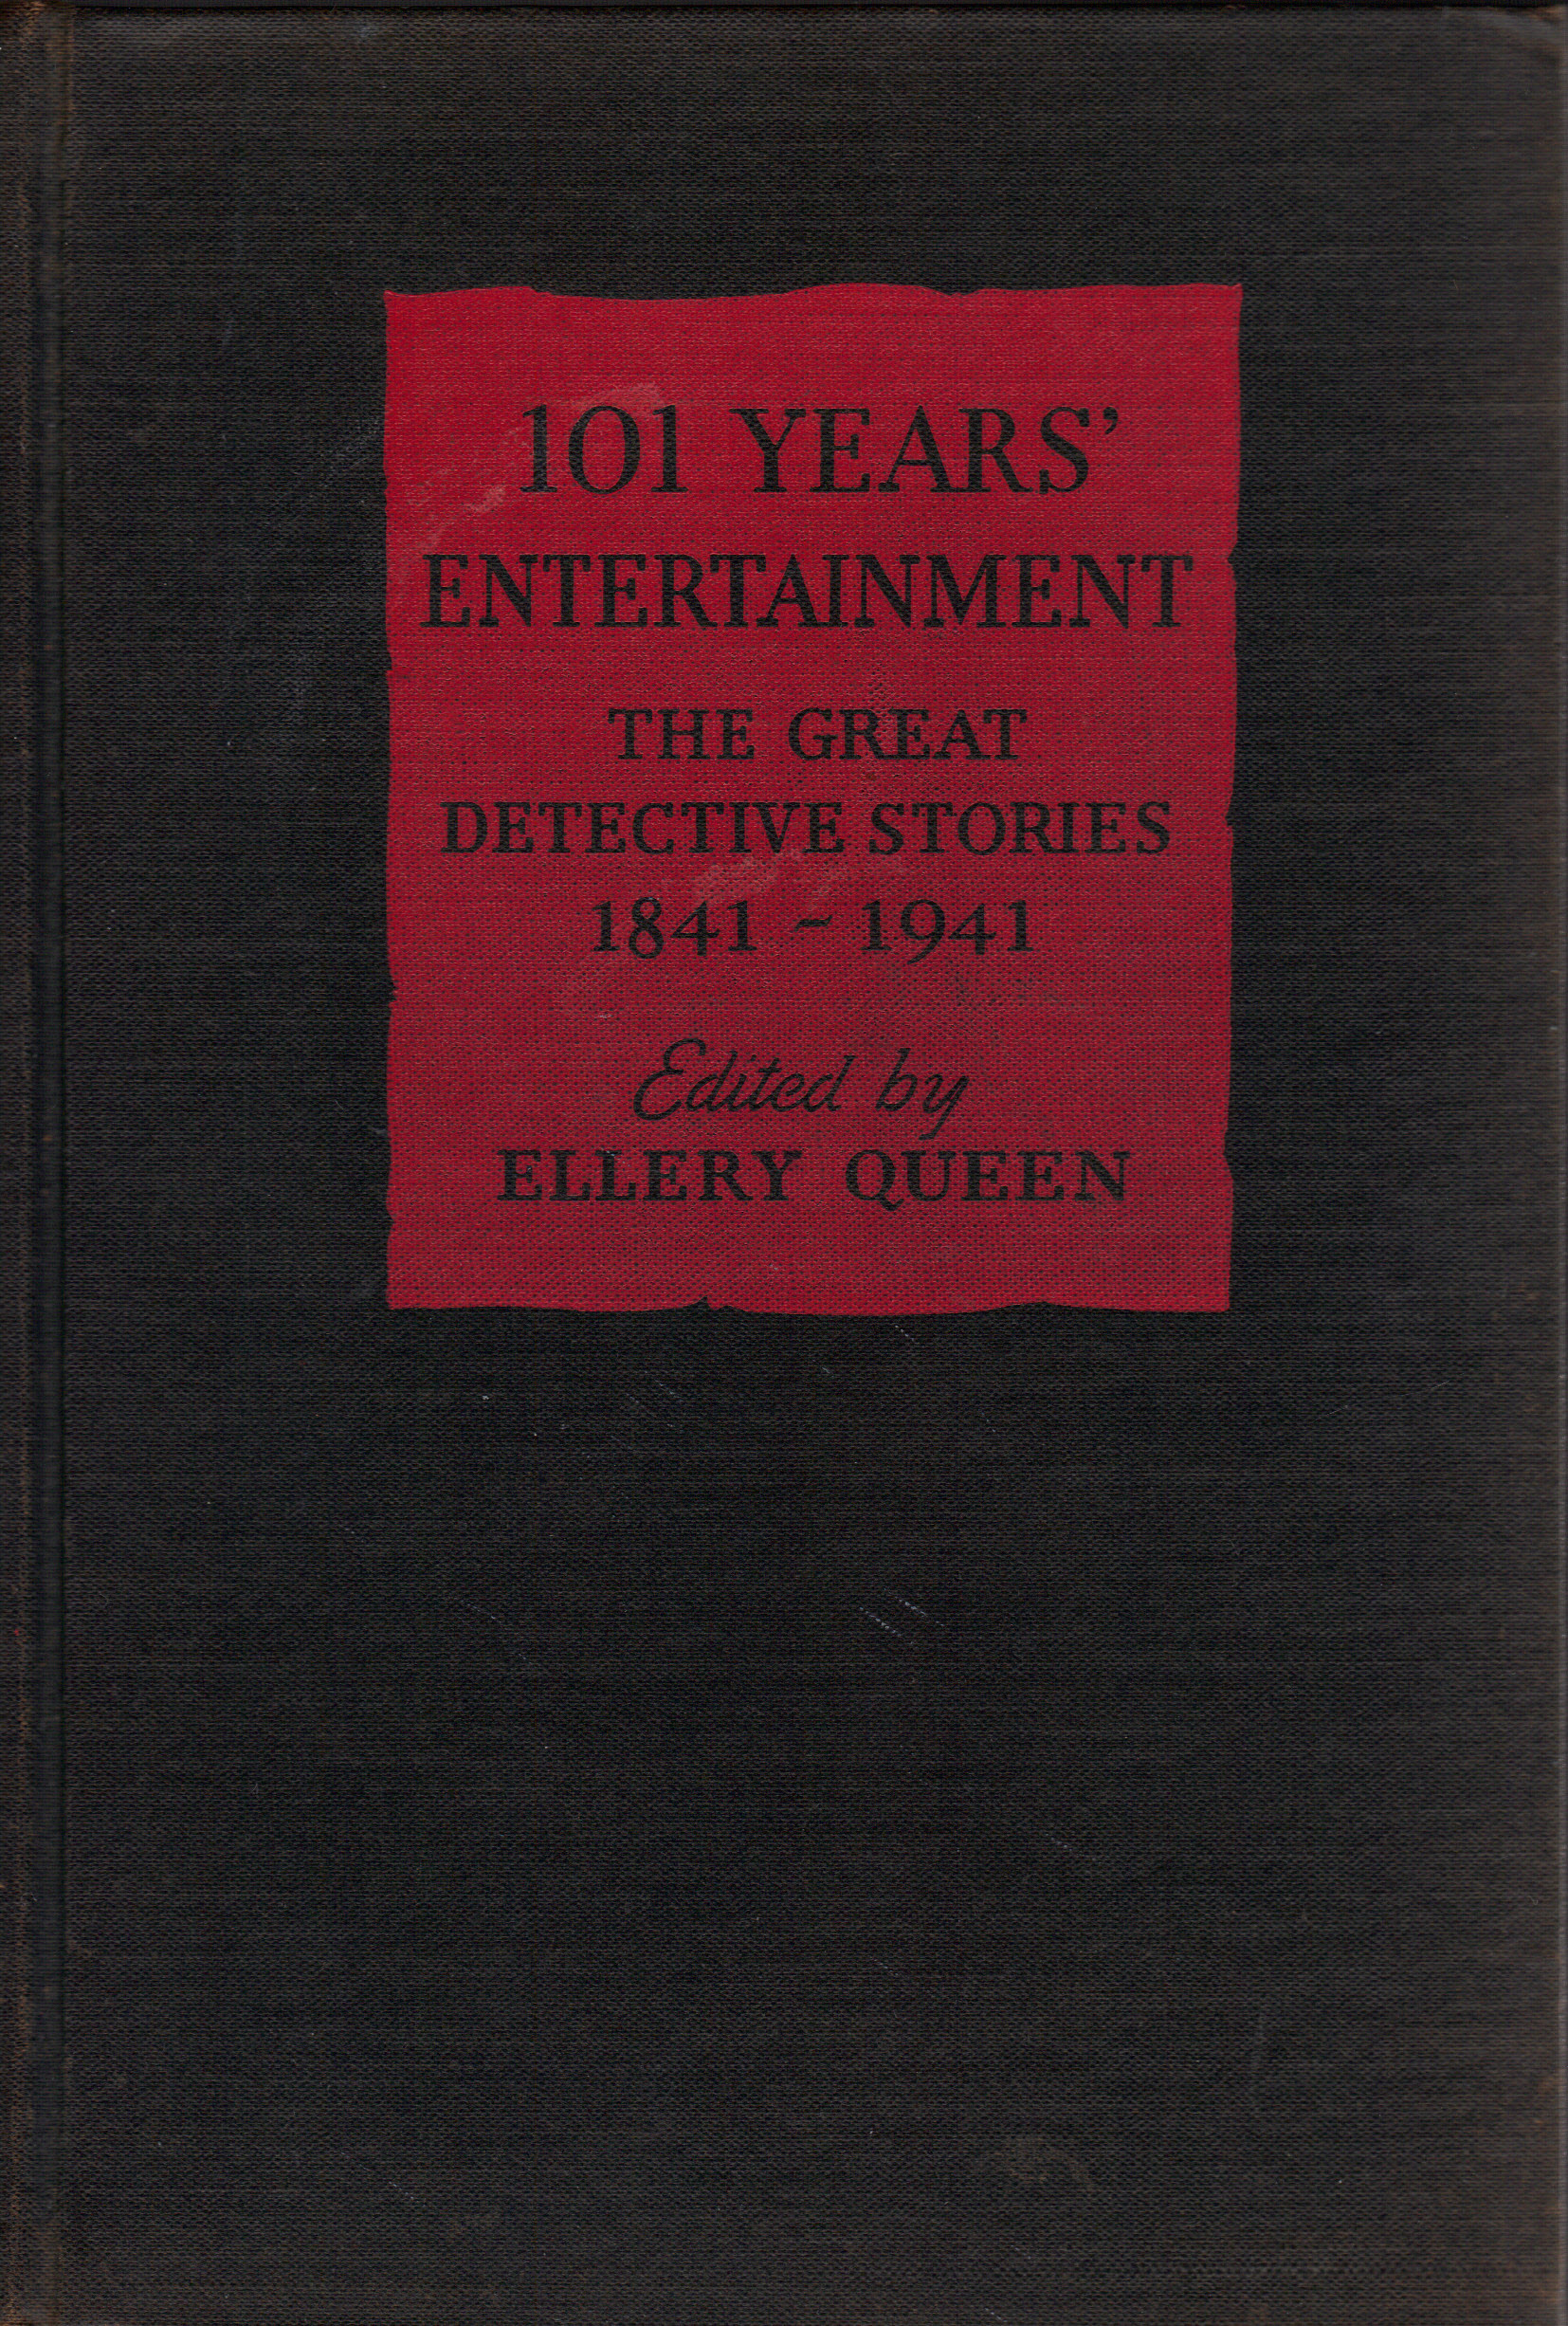 101 YEARS' ENTERTAINMENT ~ The Great Detective Stories 1841 - 1941